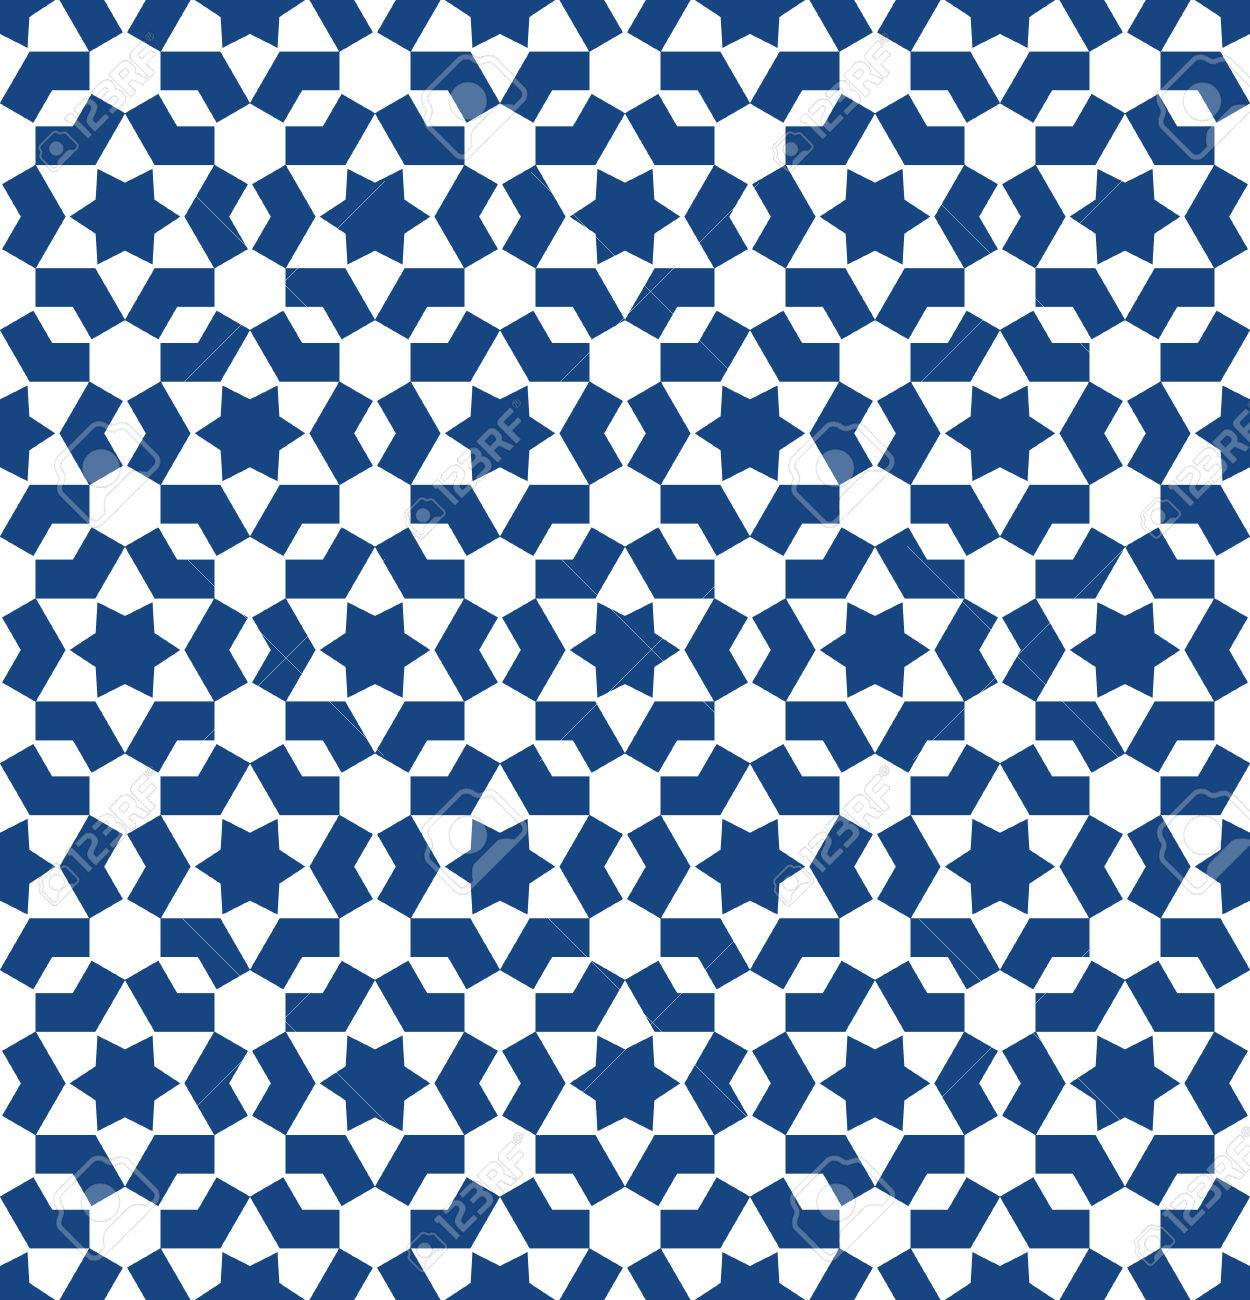 Banco De Imagens   Moroccan Style Mosaic Ornament. Seamless Mosaic Tile  Pattern